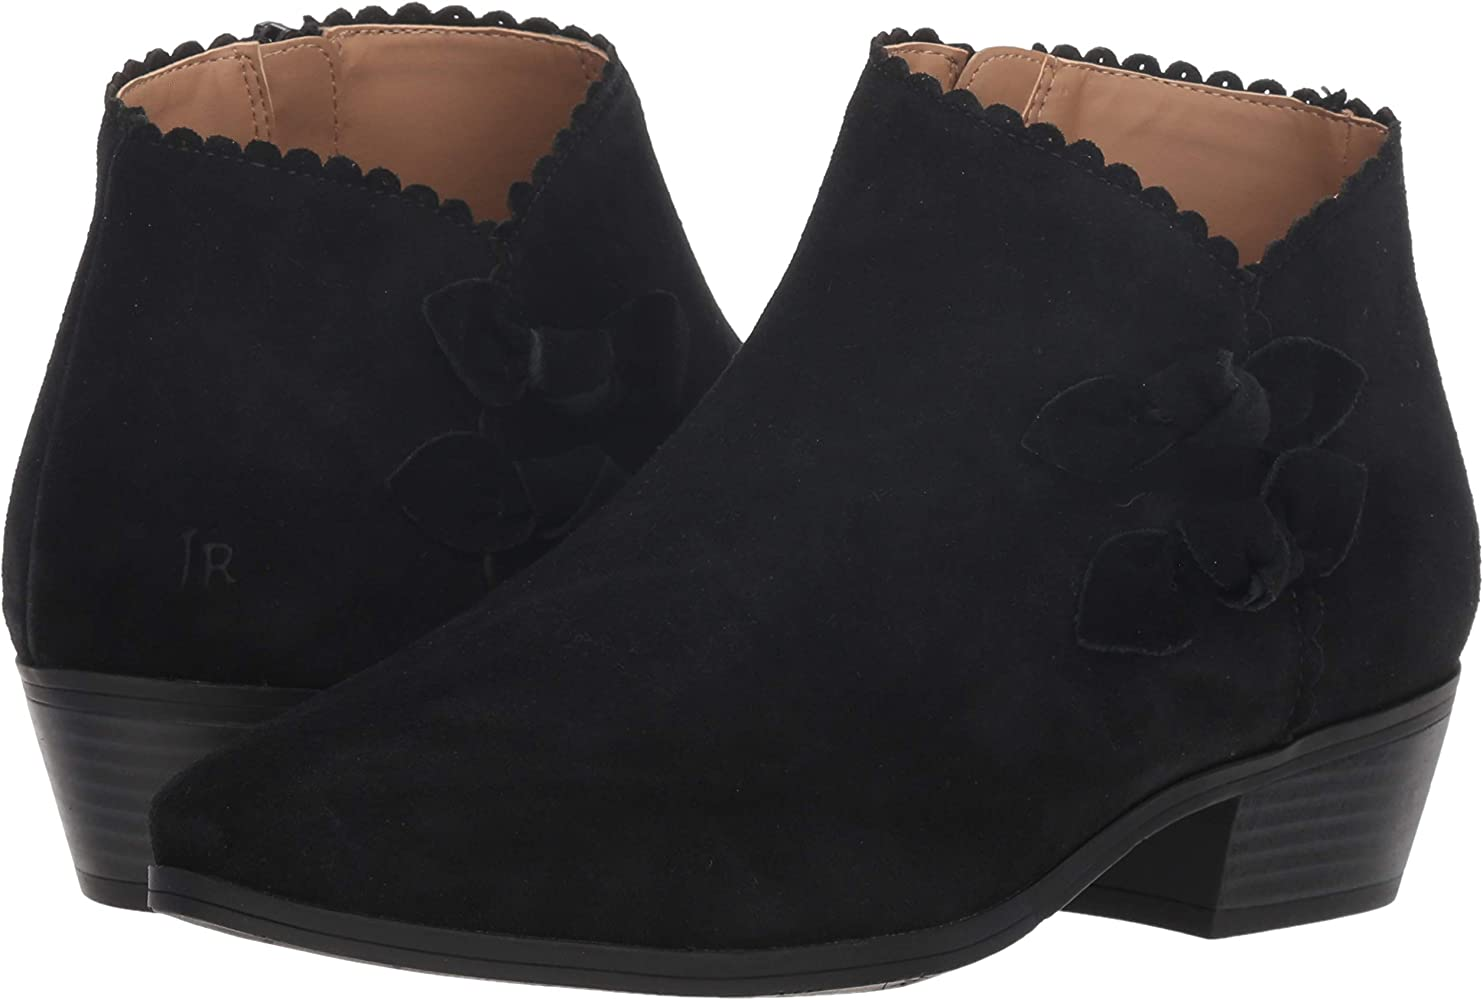 Kali Ankle Bootie Boot, Black Suede